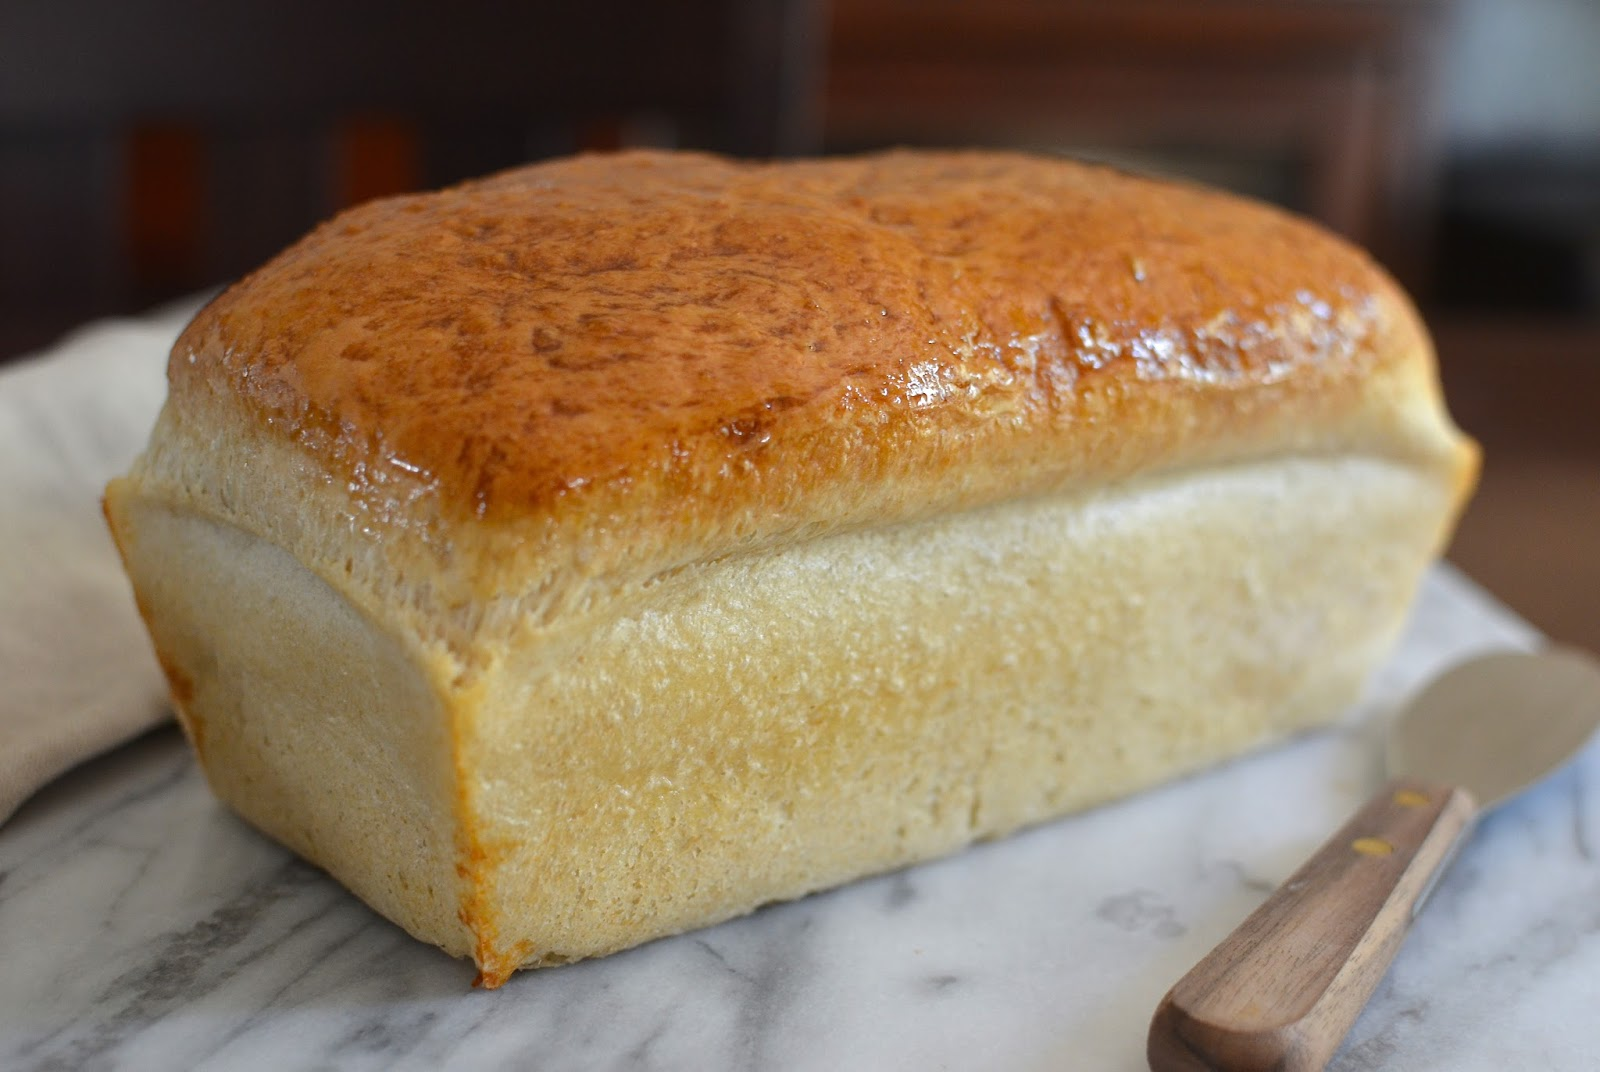 ... first learned about the super-easy English muffin loaf bread recipe